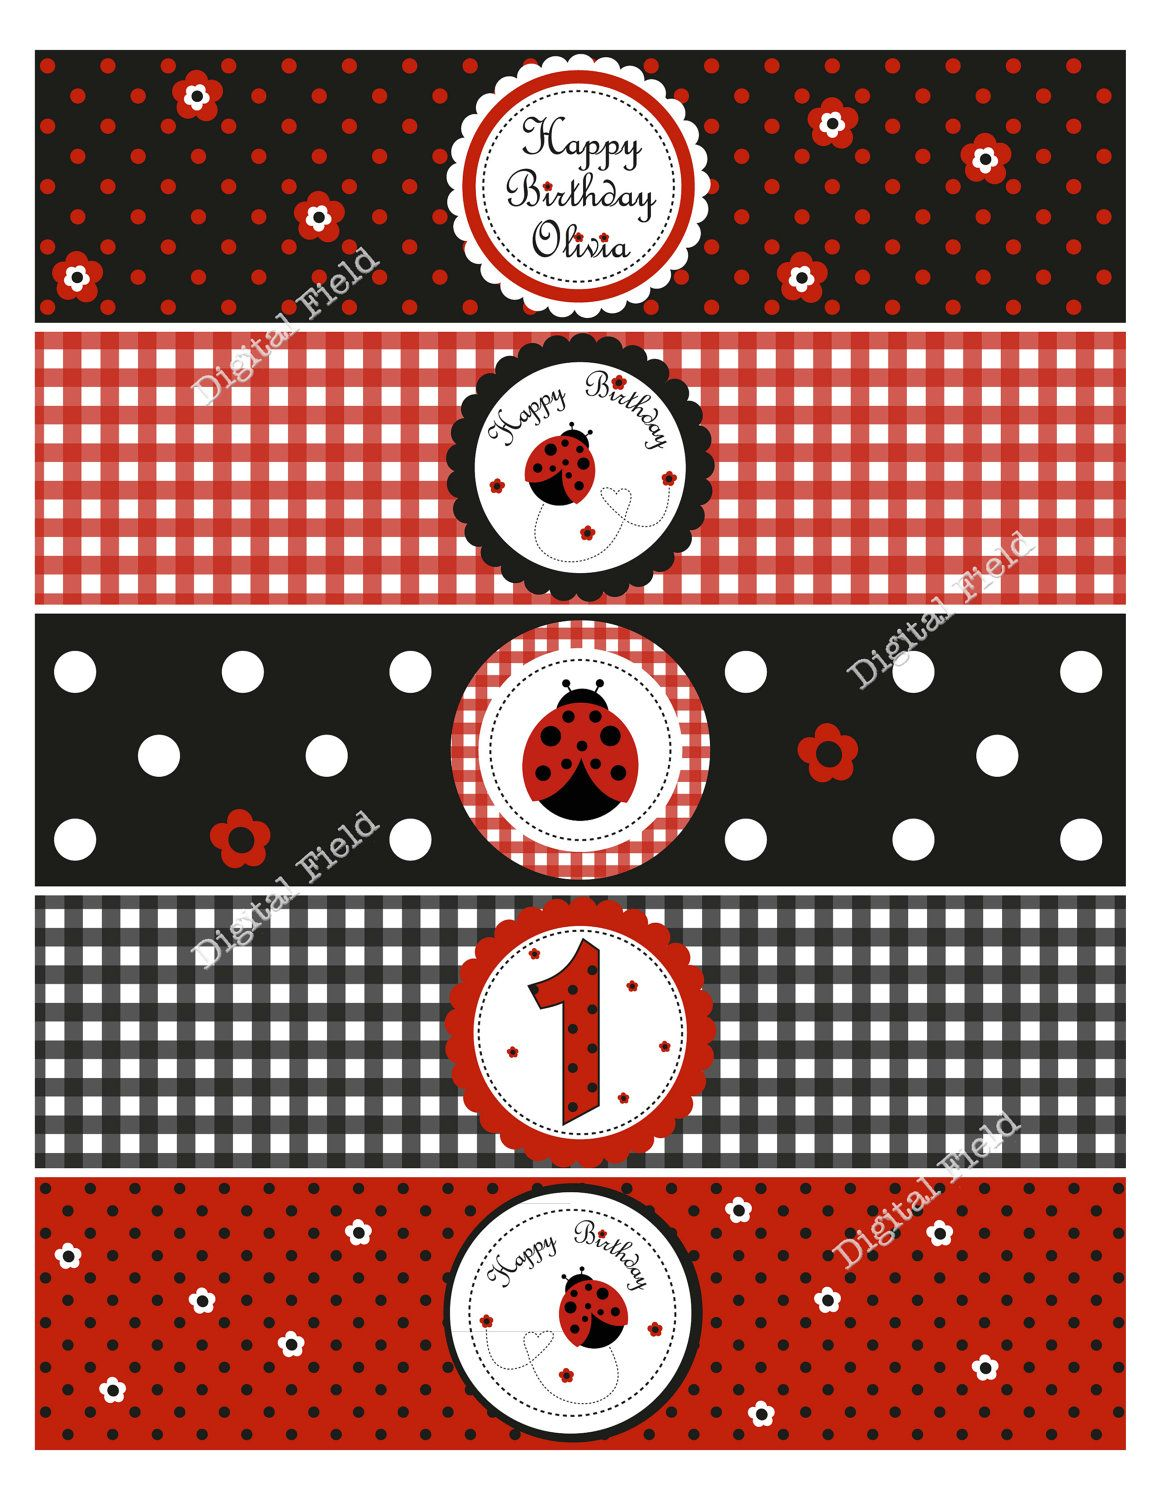 Ladybug water bottle labels diy printable birthday party decoration via etsy baby - Ladybug watering can ...